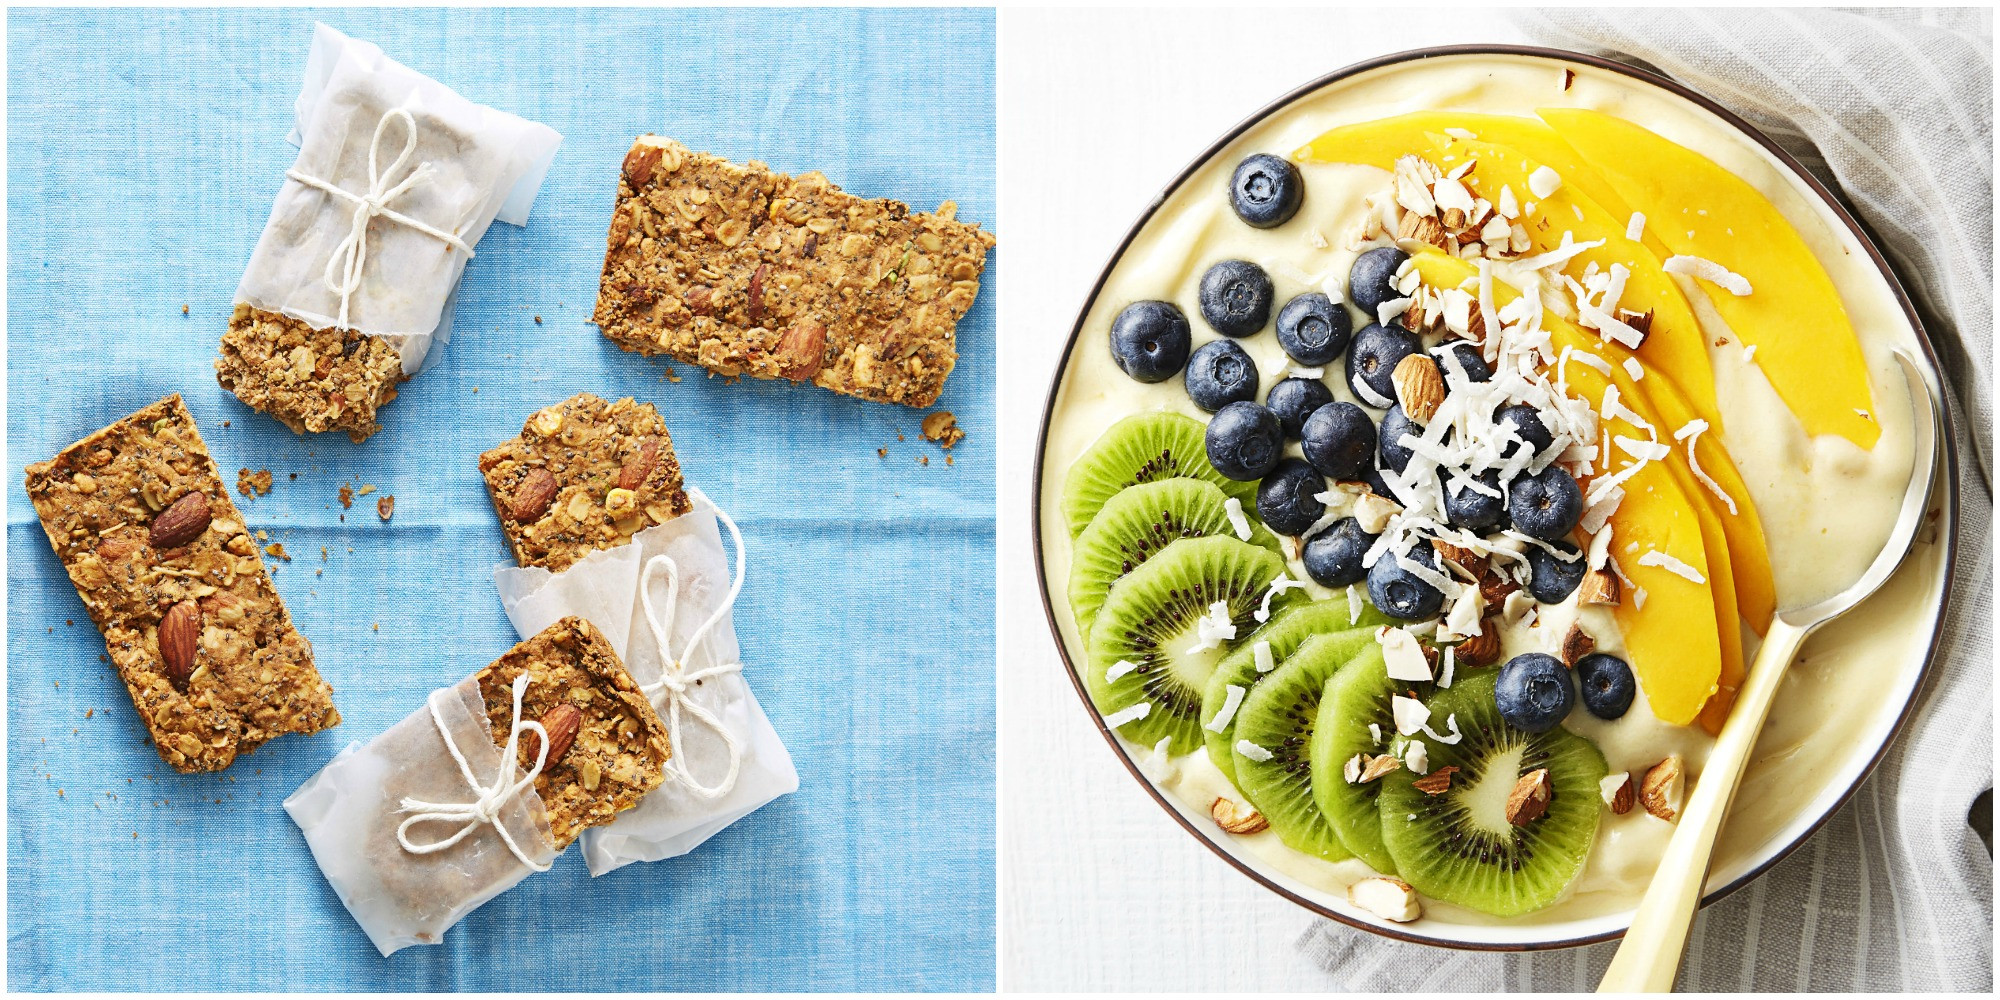 Healthy Quick Breakfast 48 Easy Healthy Breakfast Ideas Recipes for Quick and